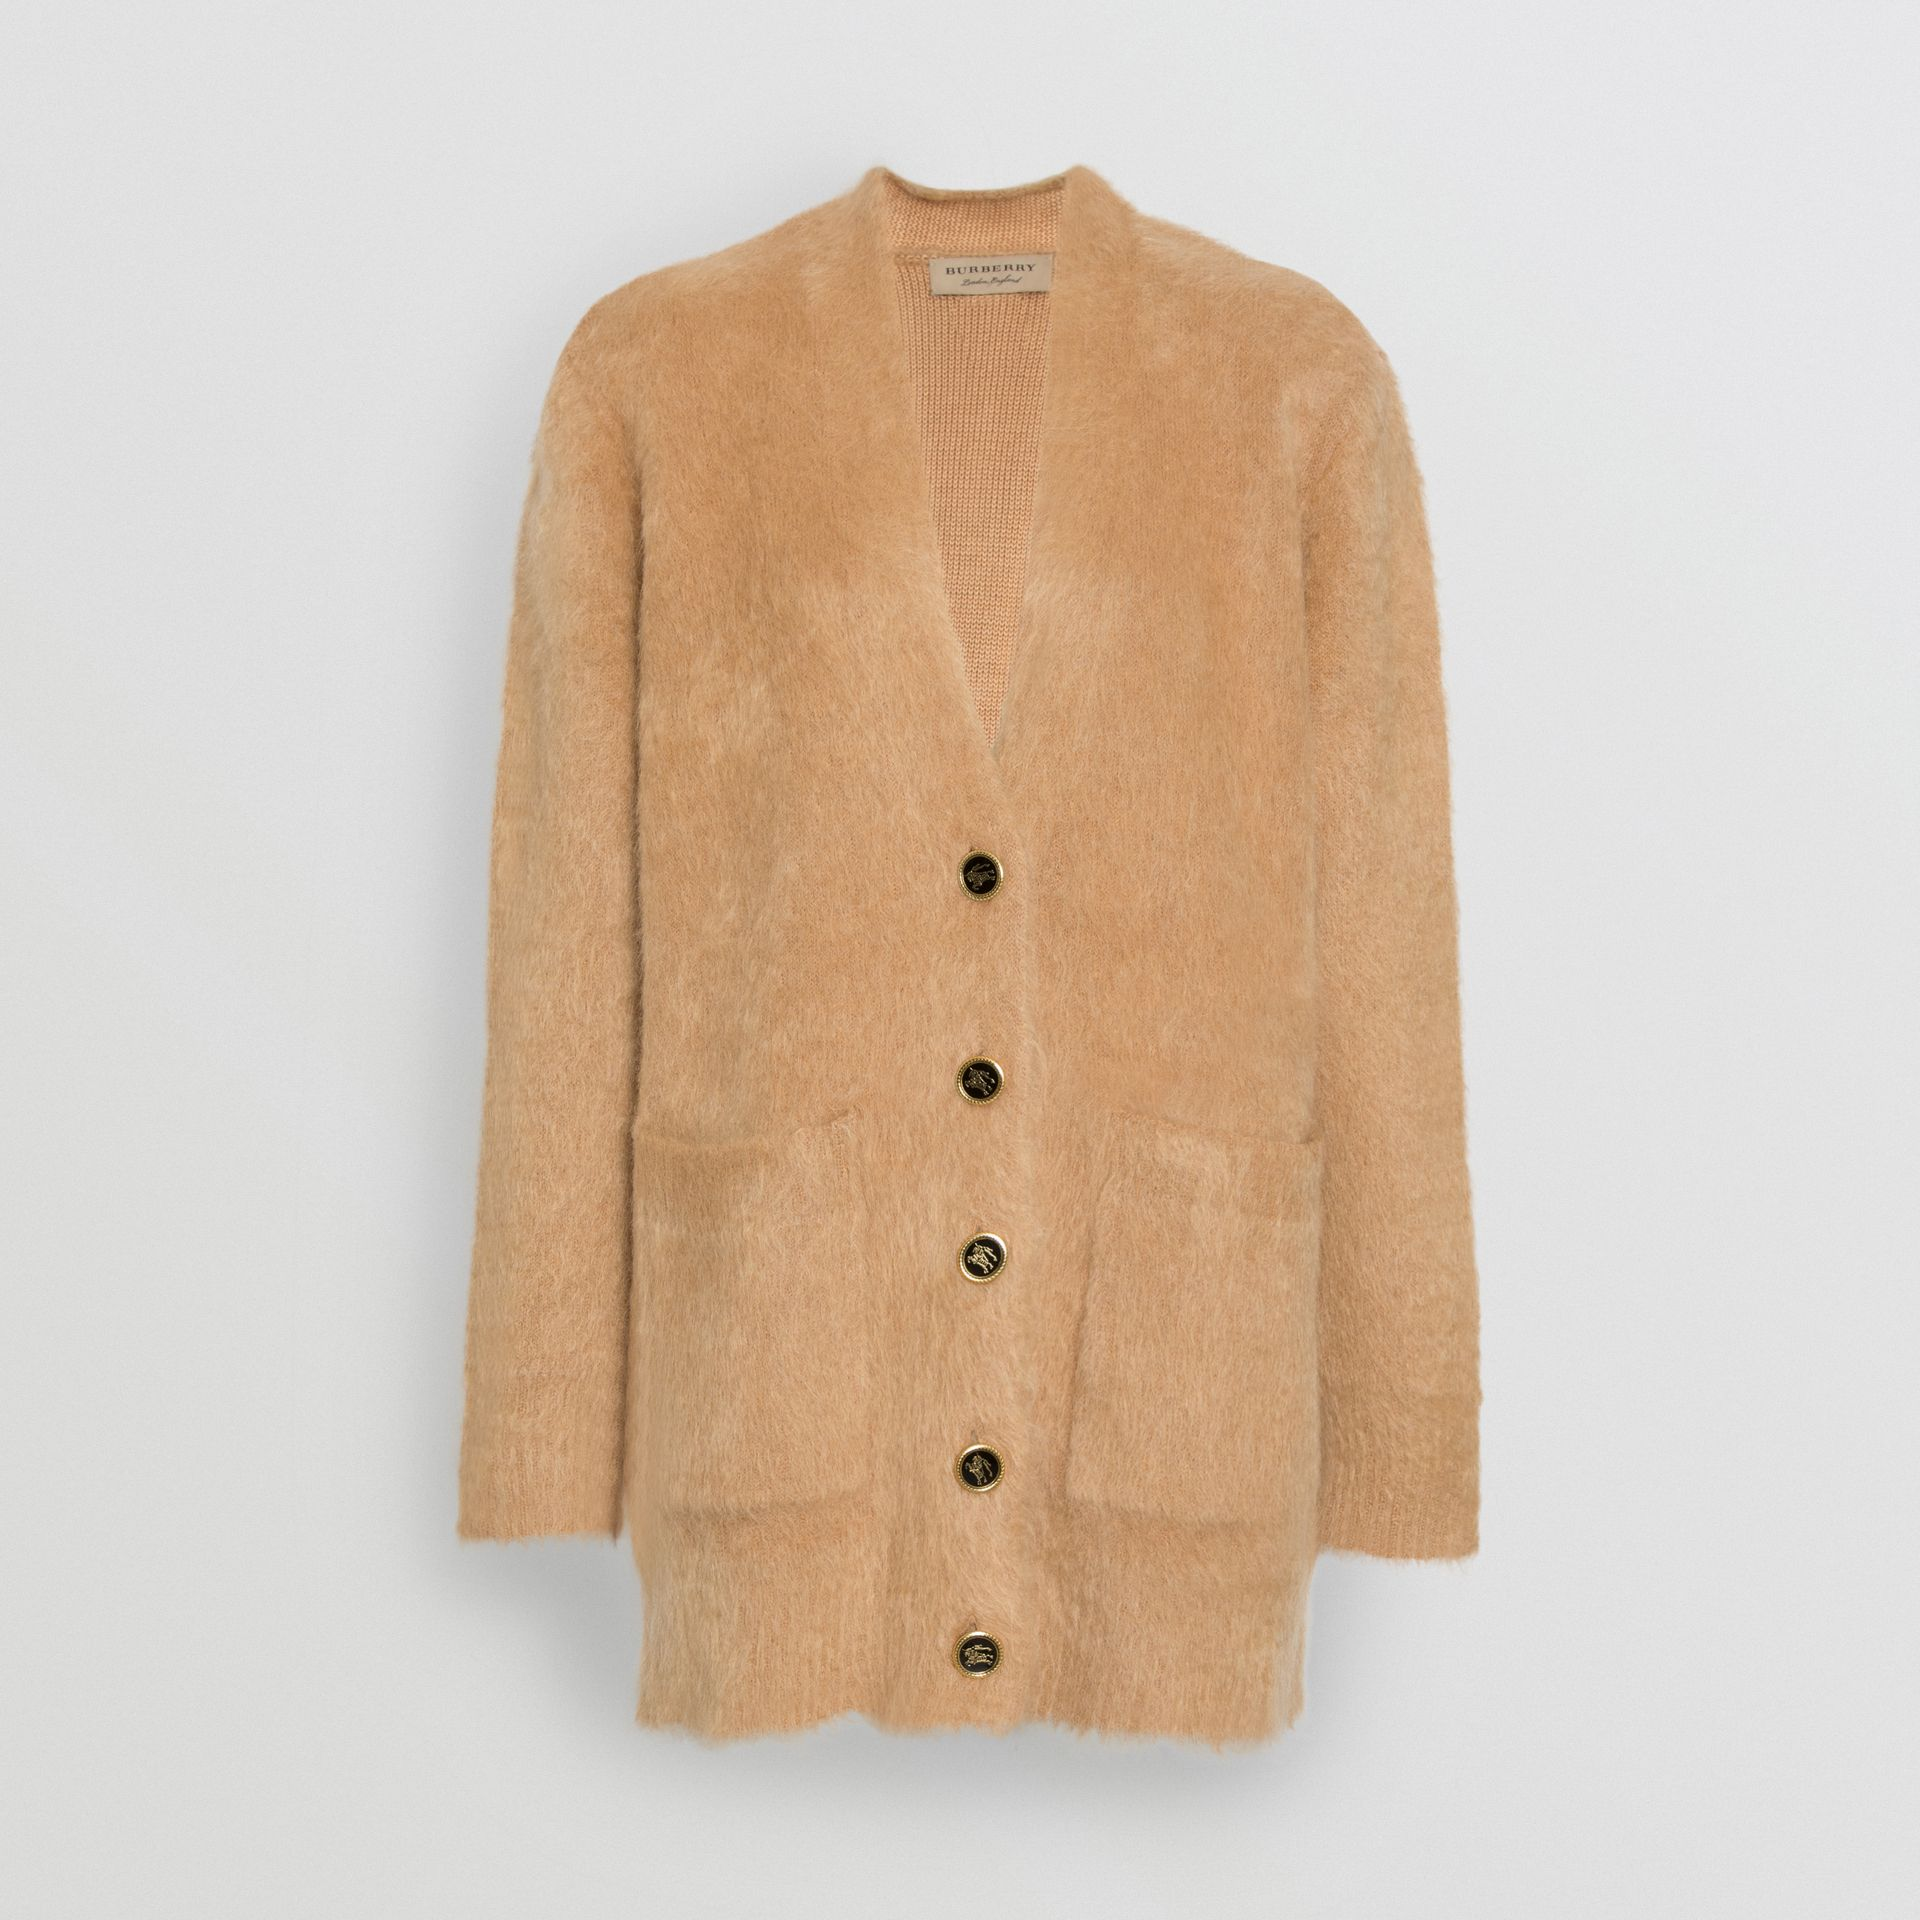 Silk Mohair Wool Blend V-neck Cardigan in Light Camel - Women | Burberry United States - gallery image 3